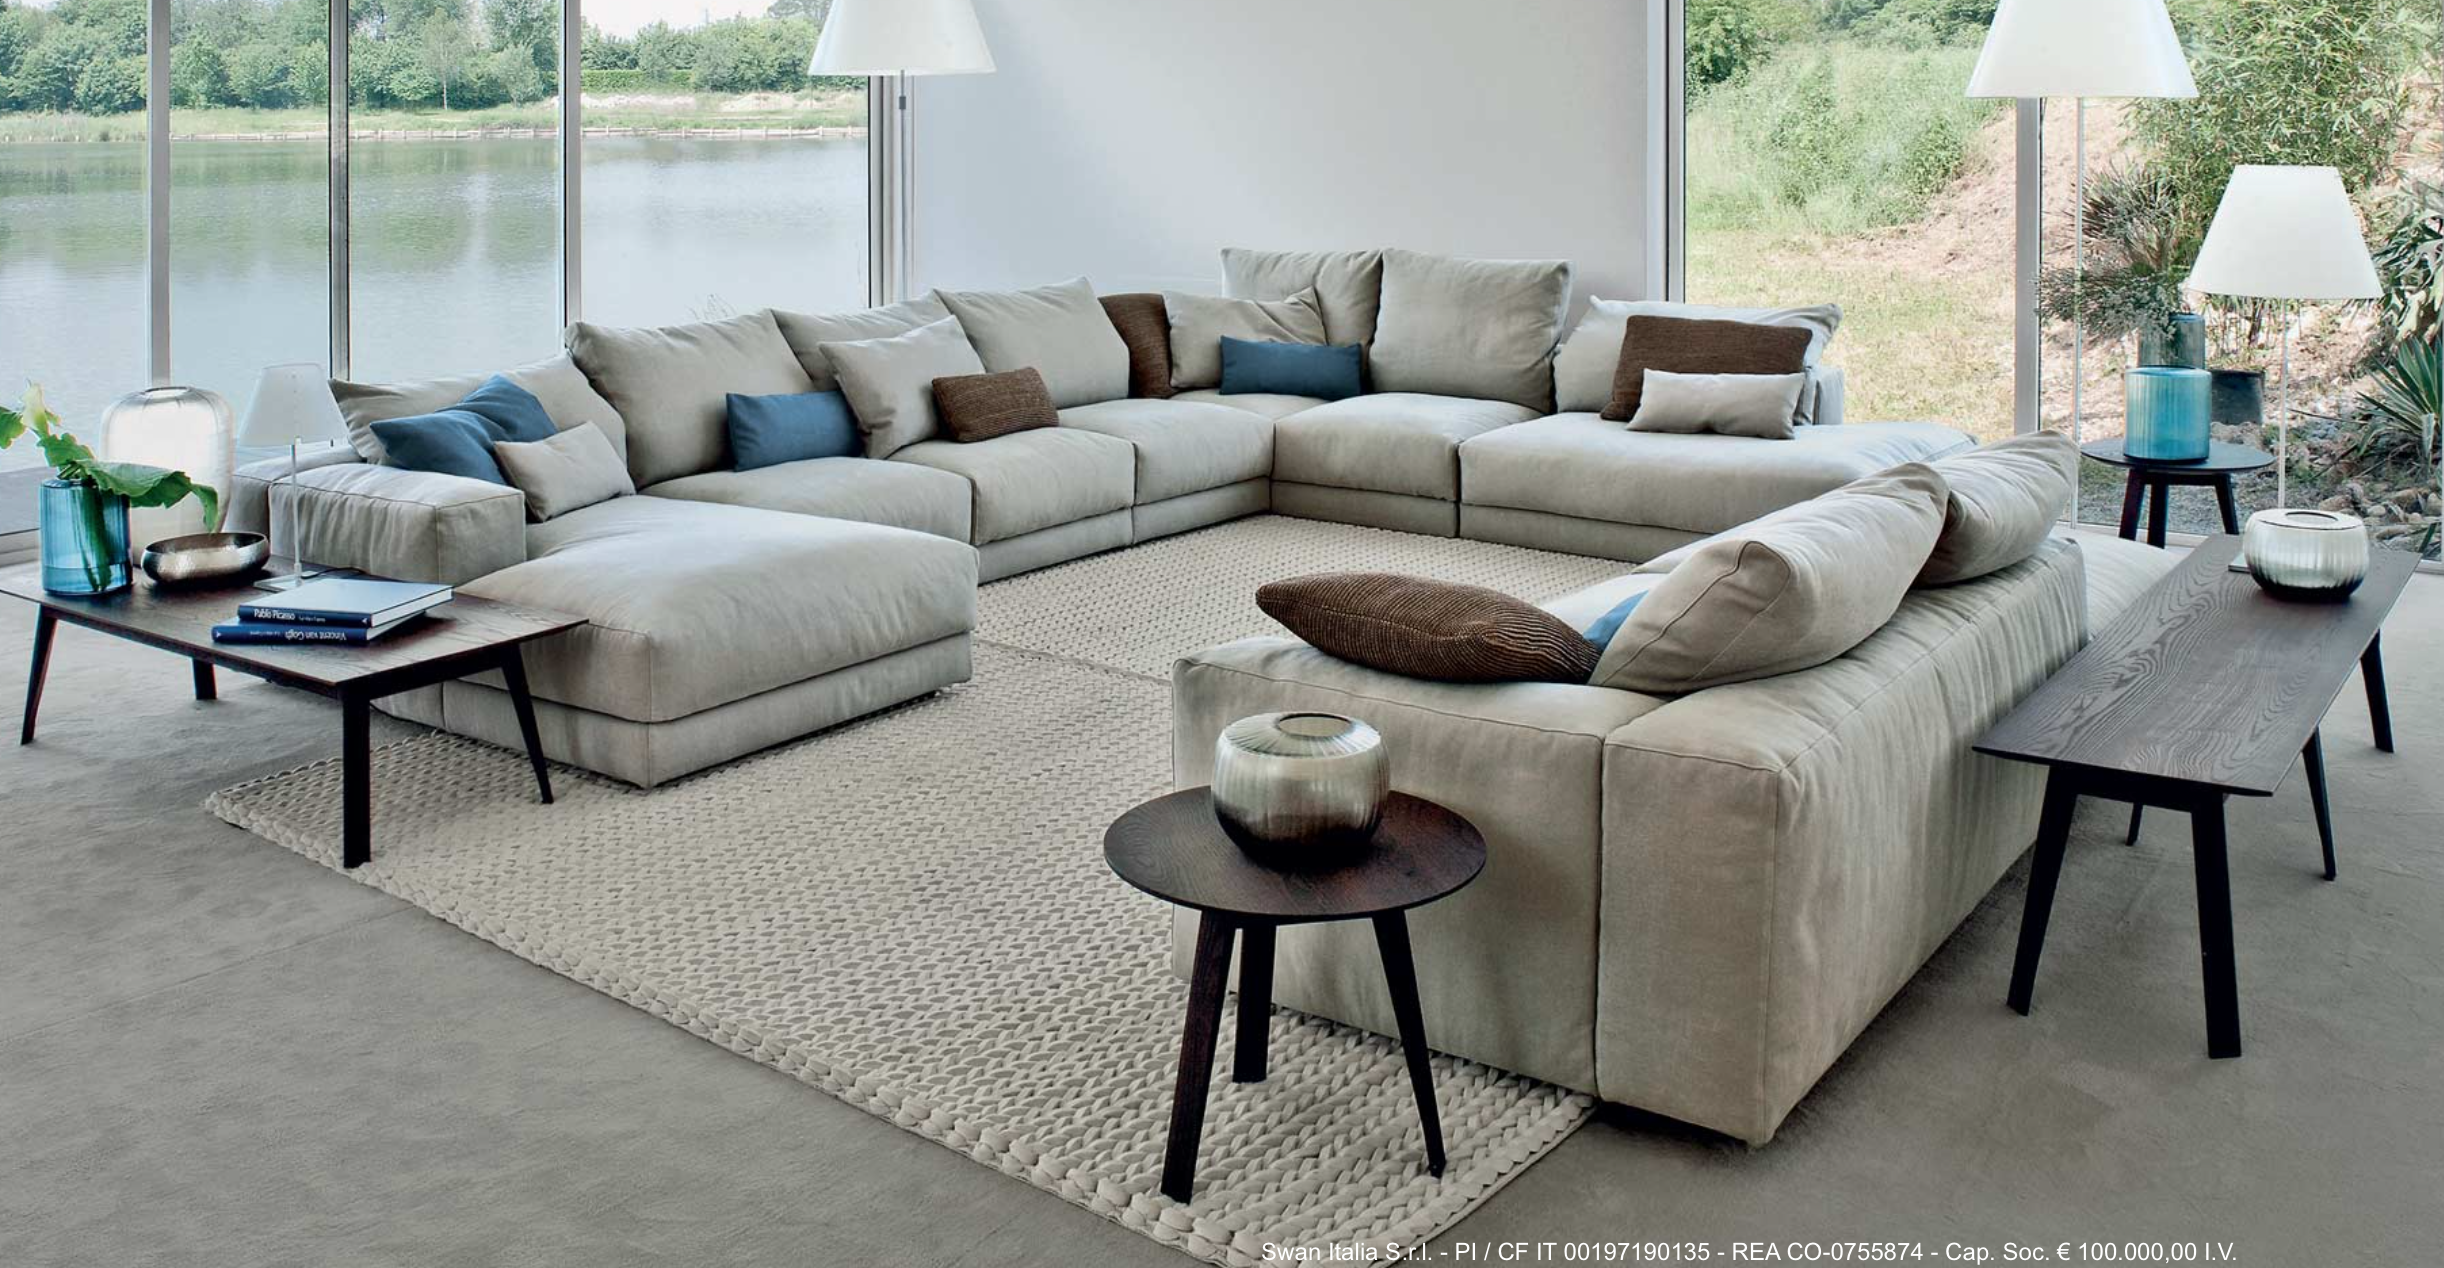 Hills Large Comfortable Sofa Refined Balance Between Soft Lines And Generous Proportions